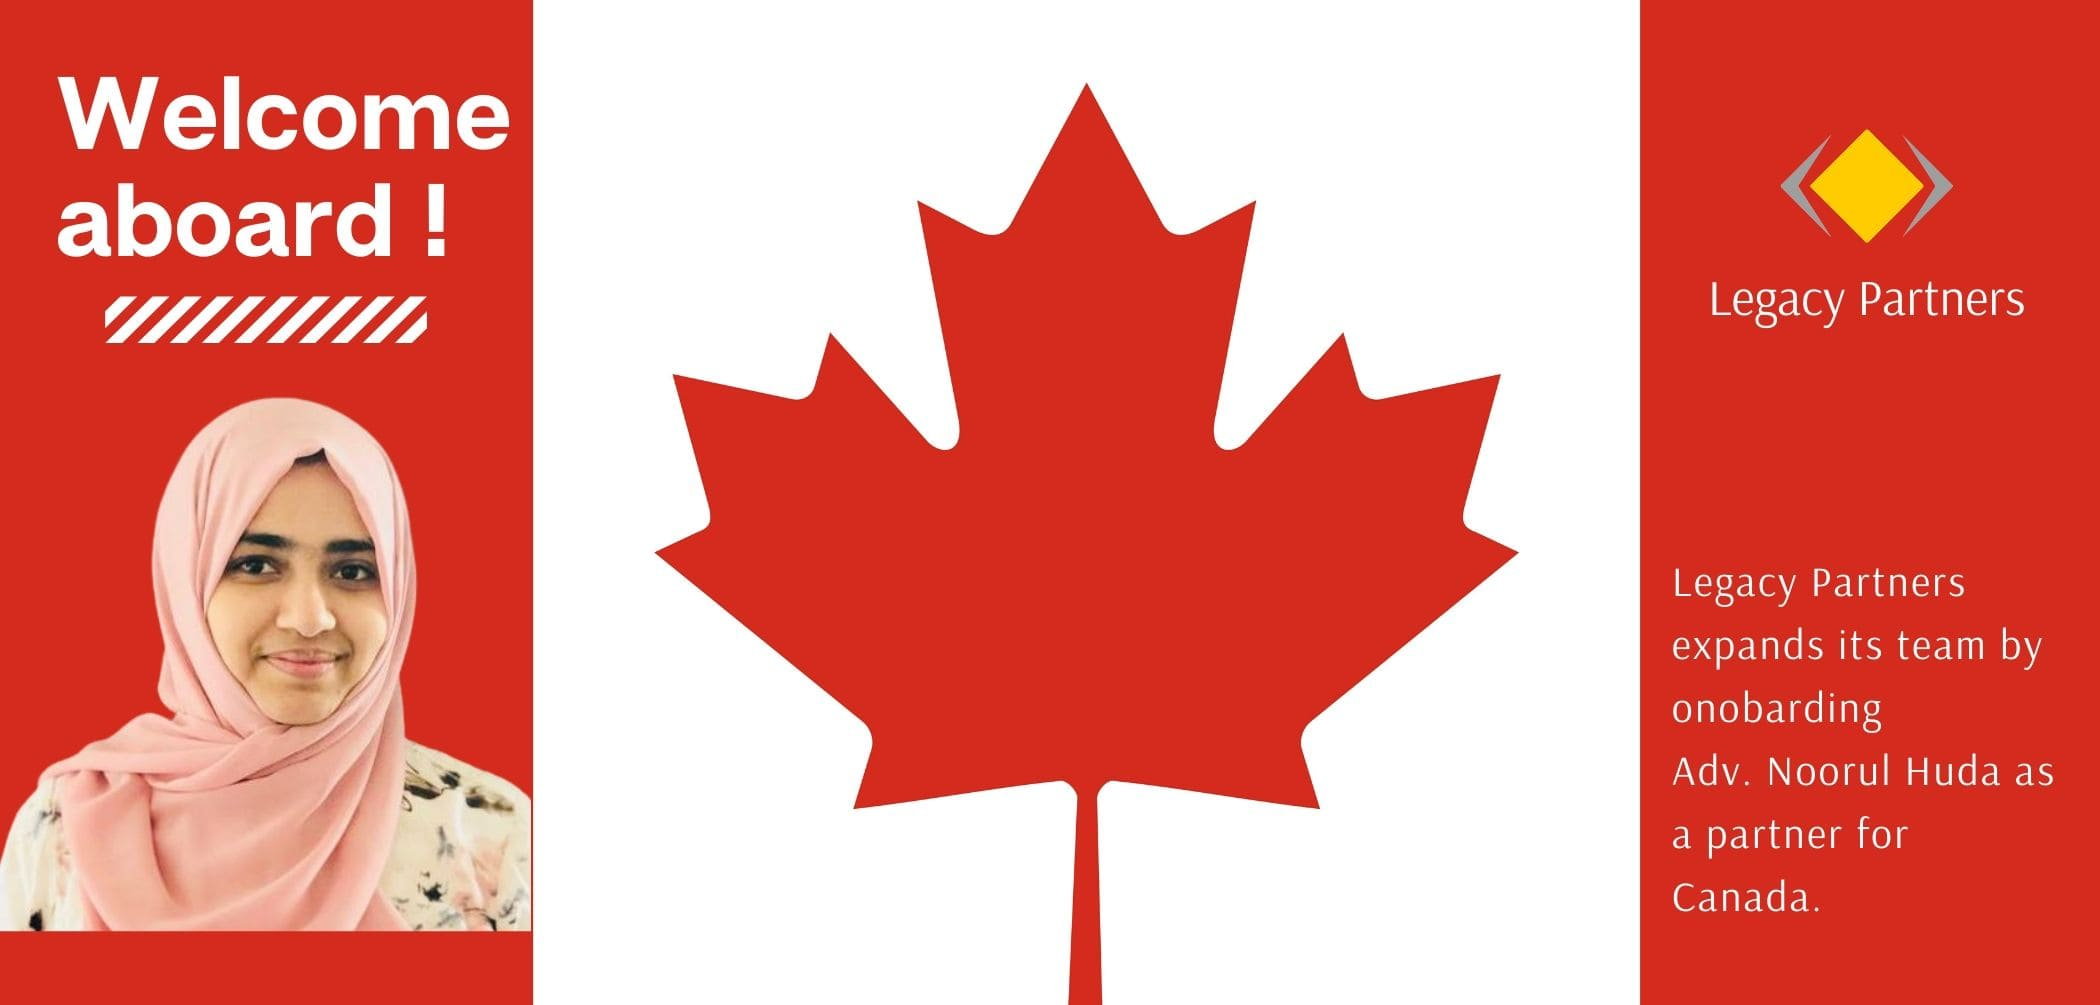 Legacy Partners expanded its services to Canada